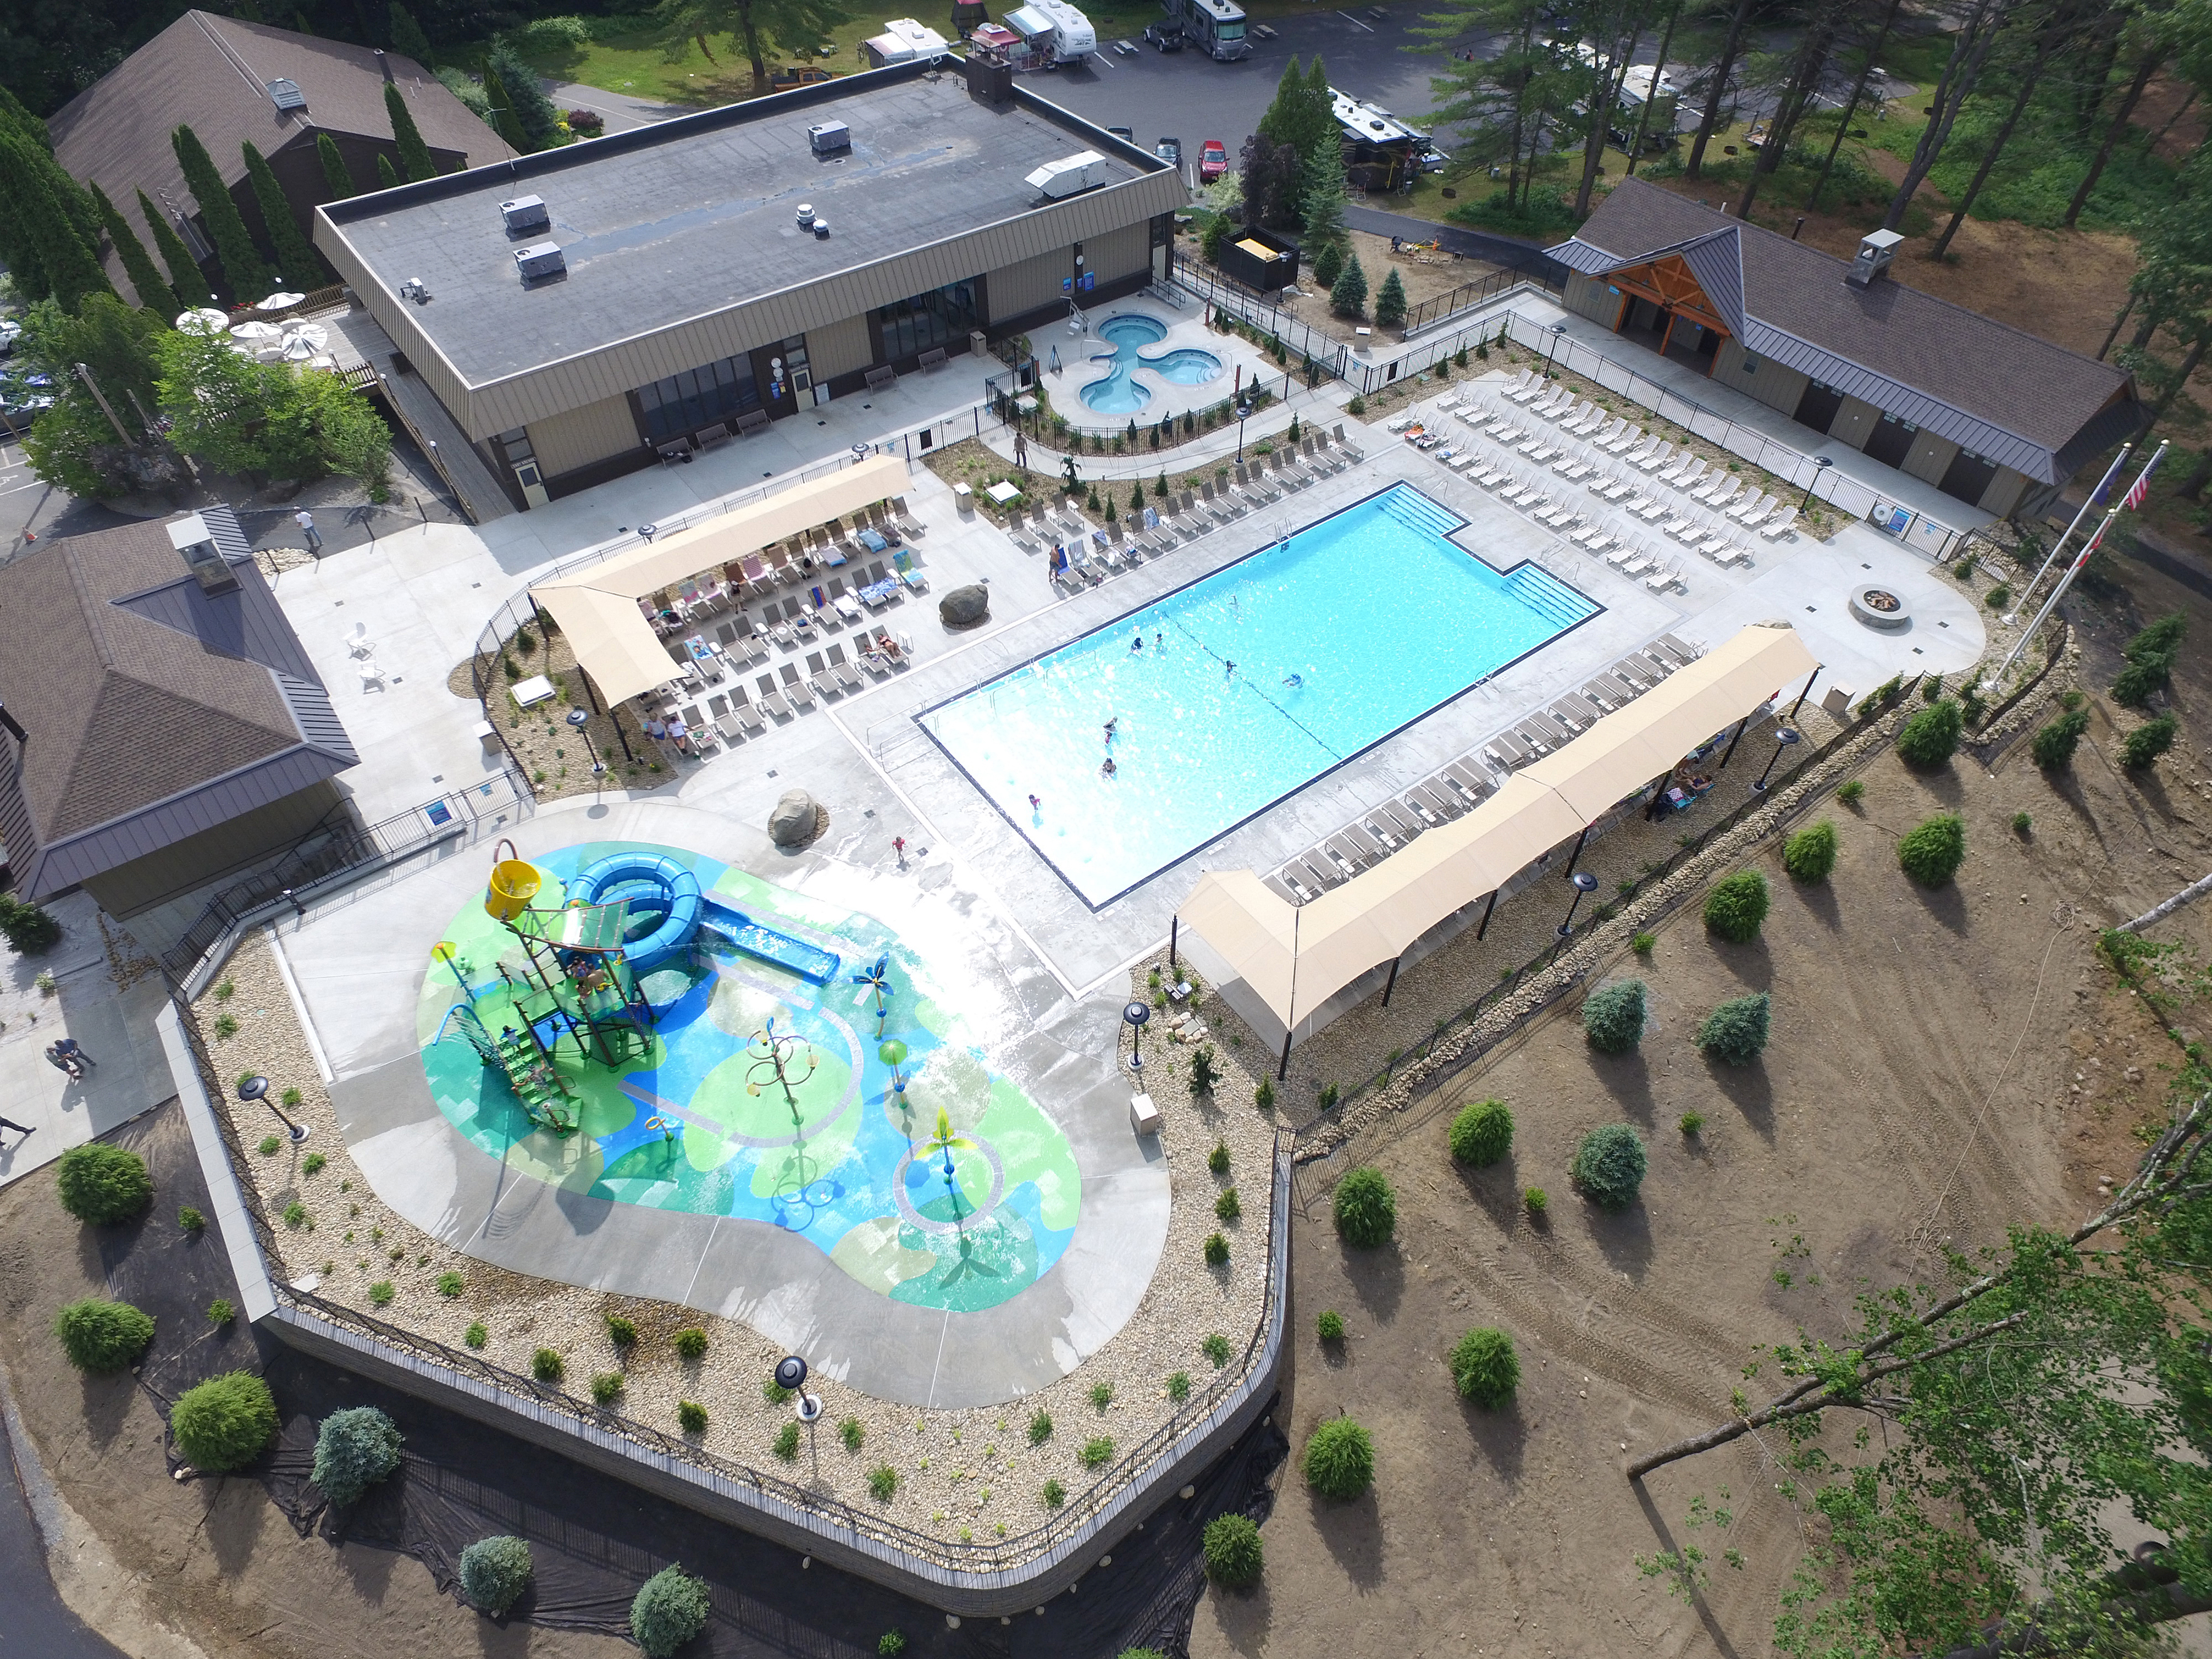 Aerial photography of large outdoor waterpark